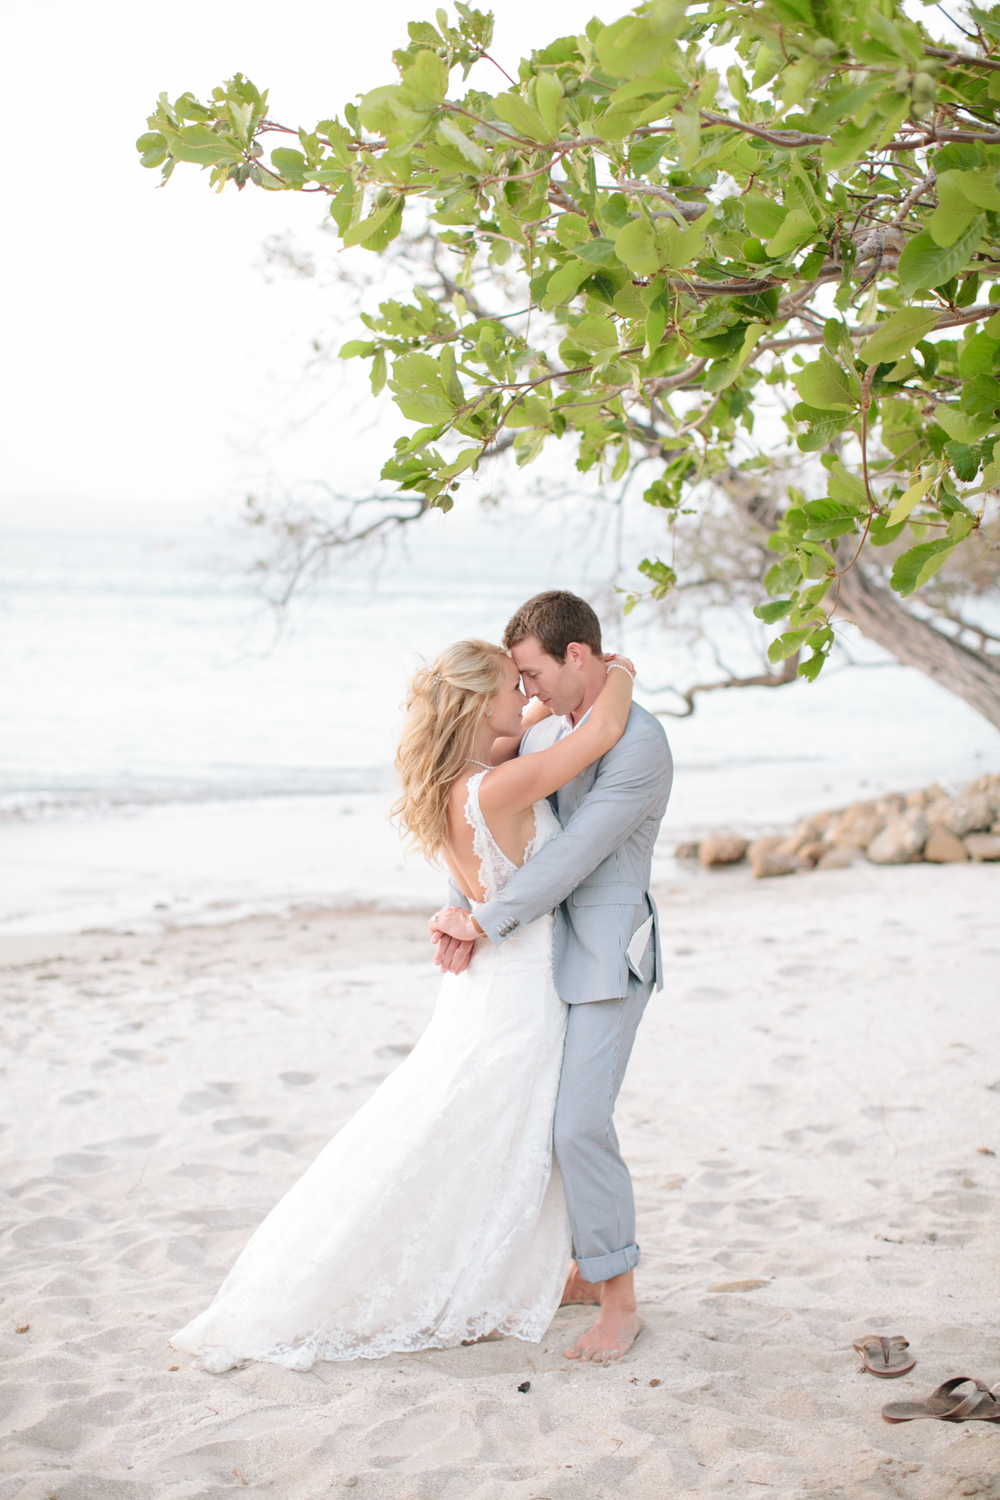 Costa Rica Dreams Las Mareas Wedding by Michelle Cross-39.jpg